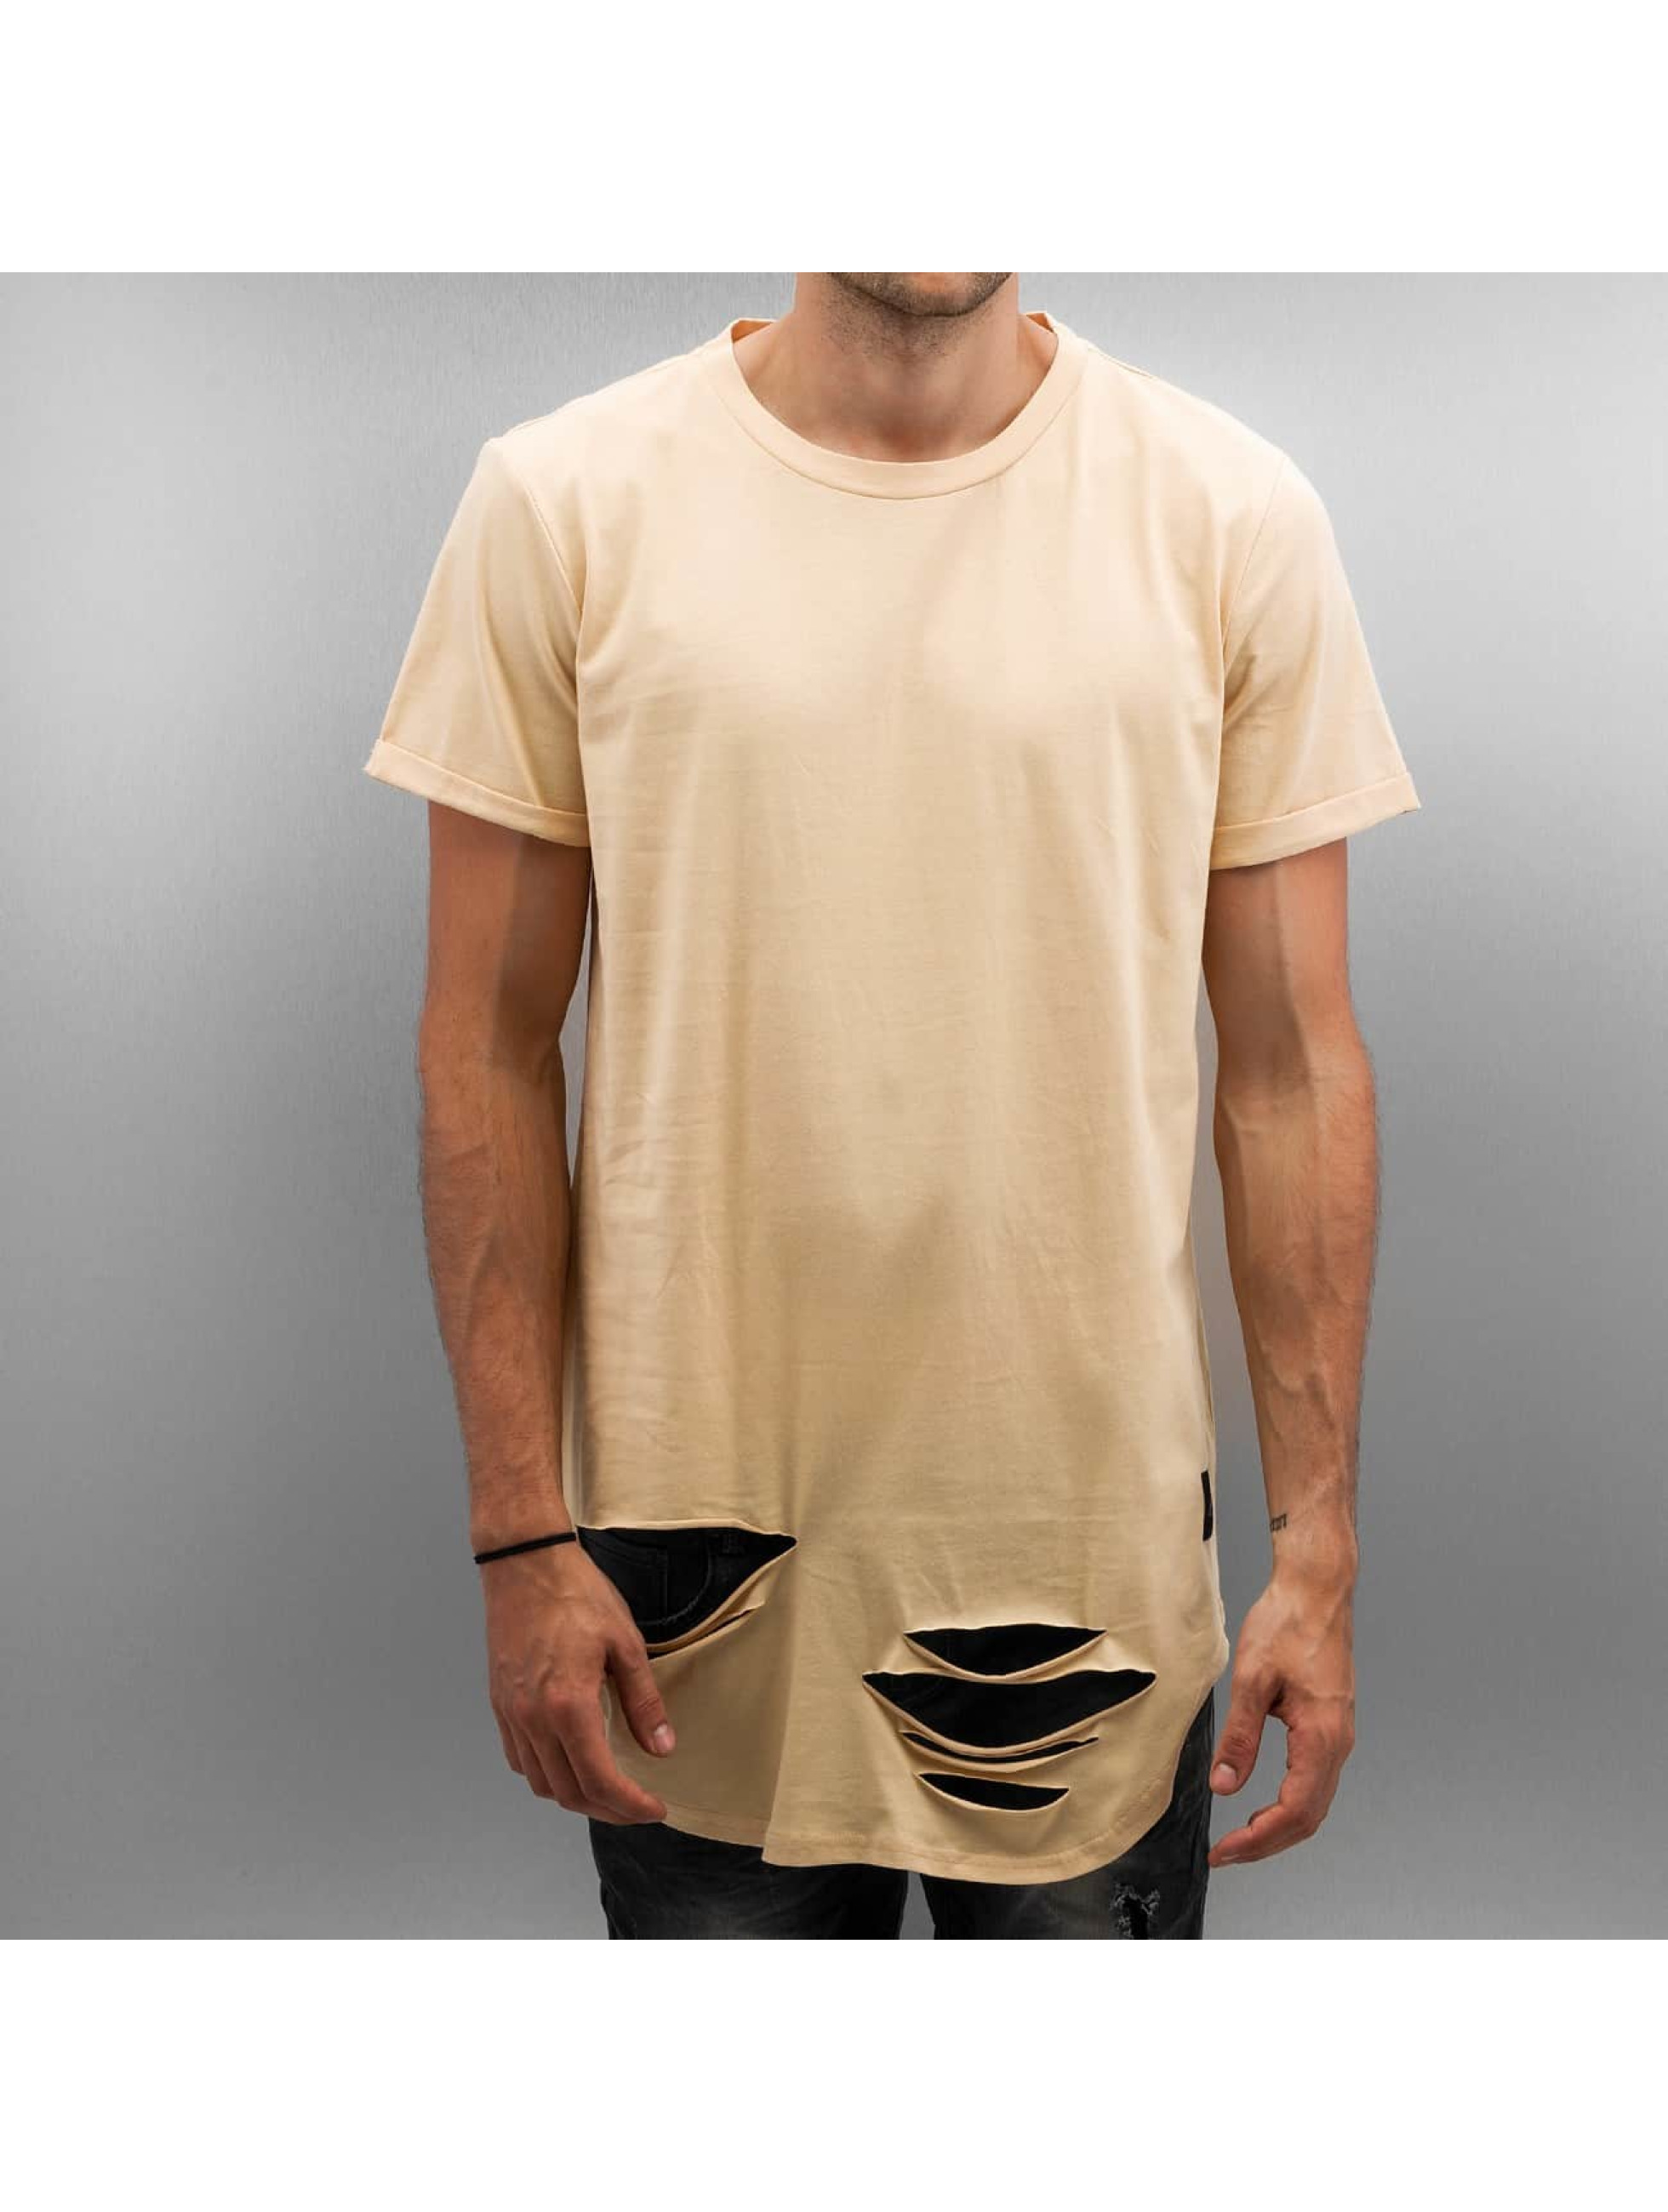 Tall Tees Destroyed Rounded Bottom in beige